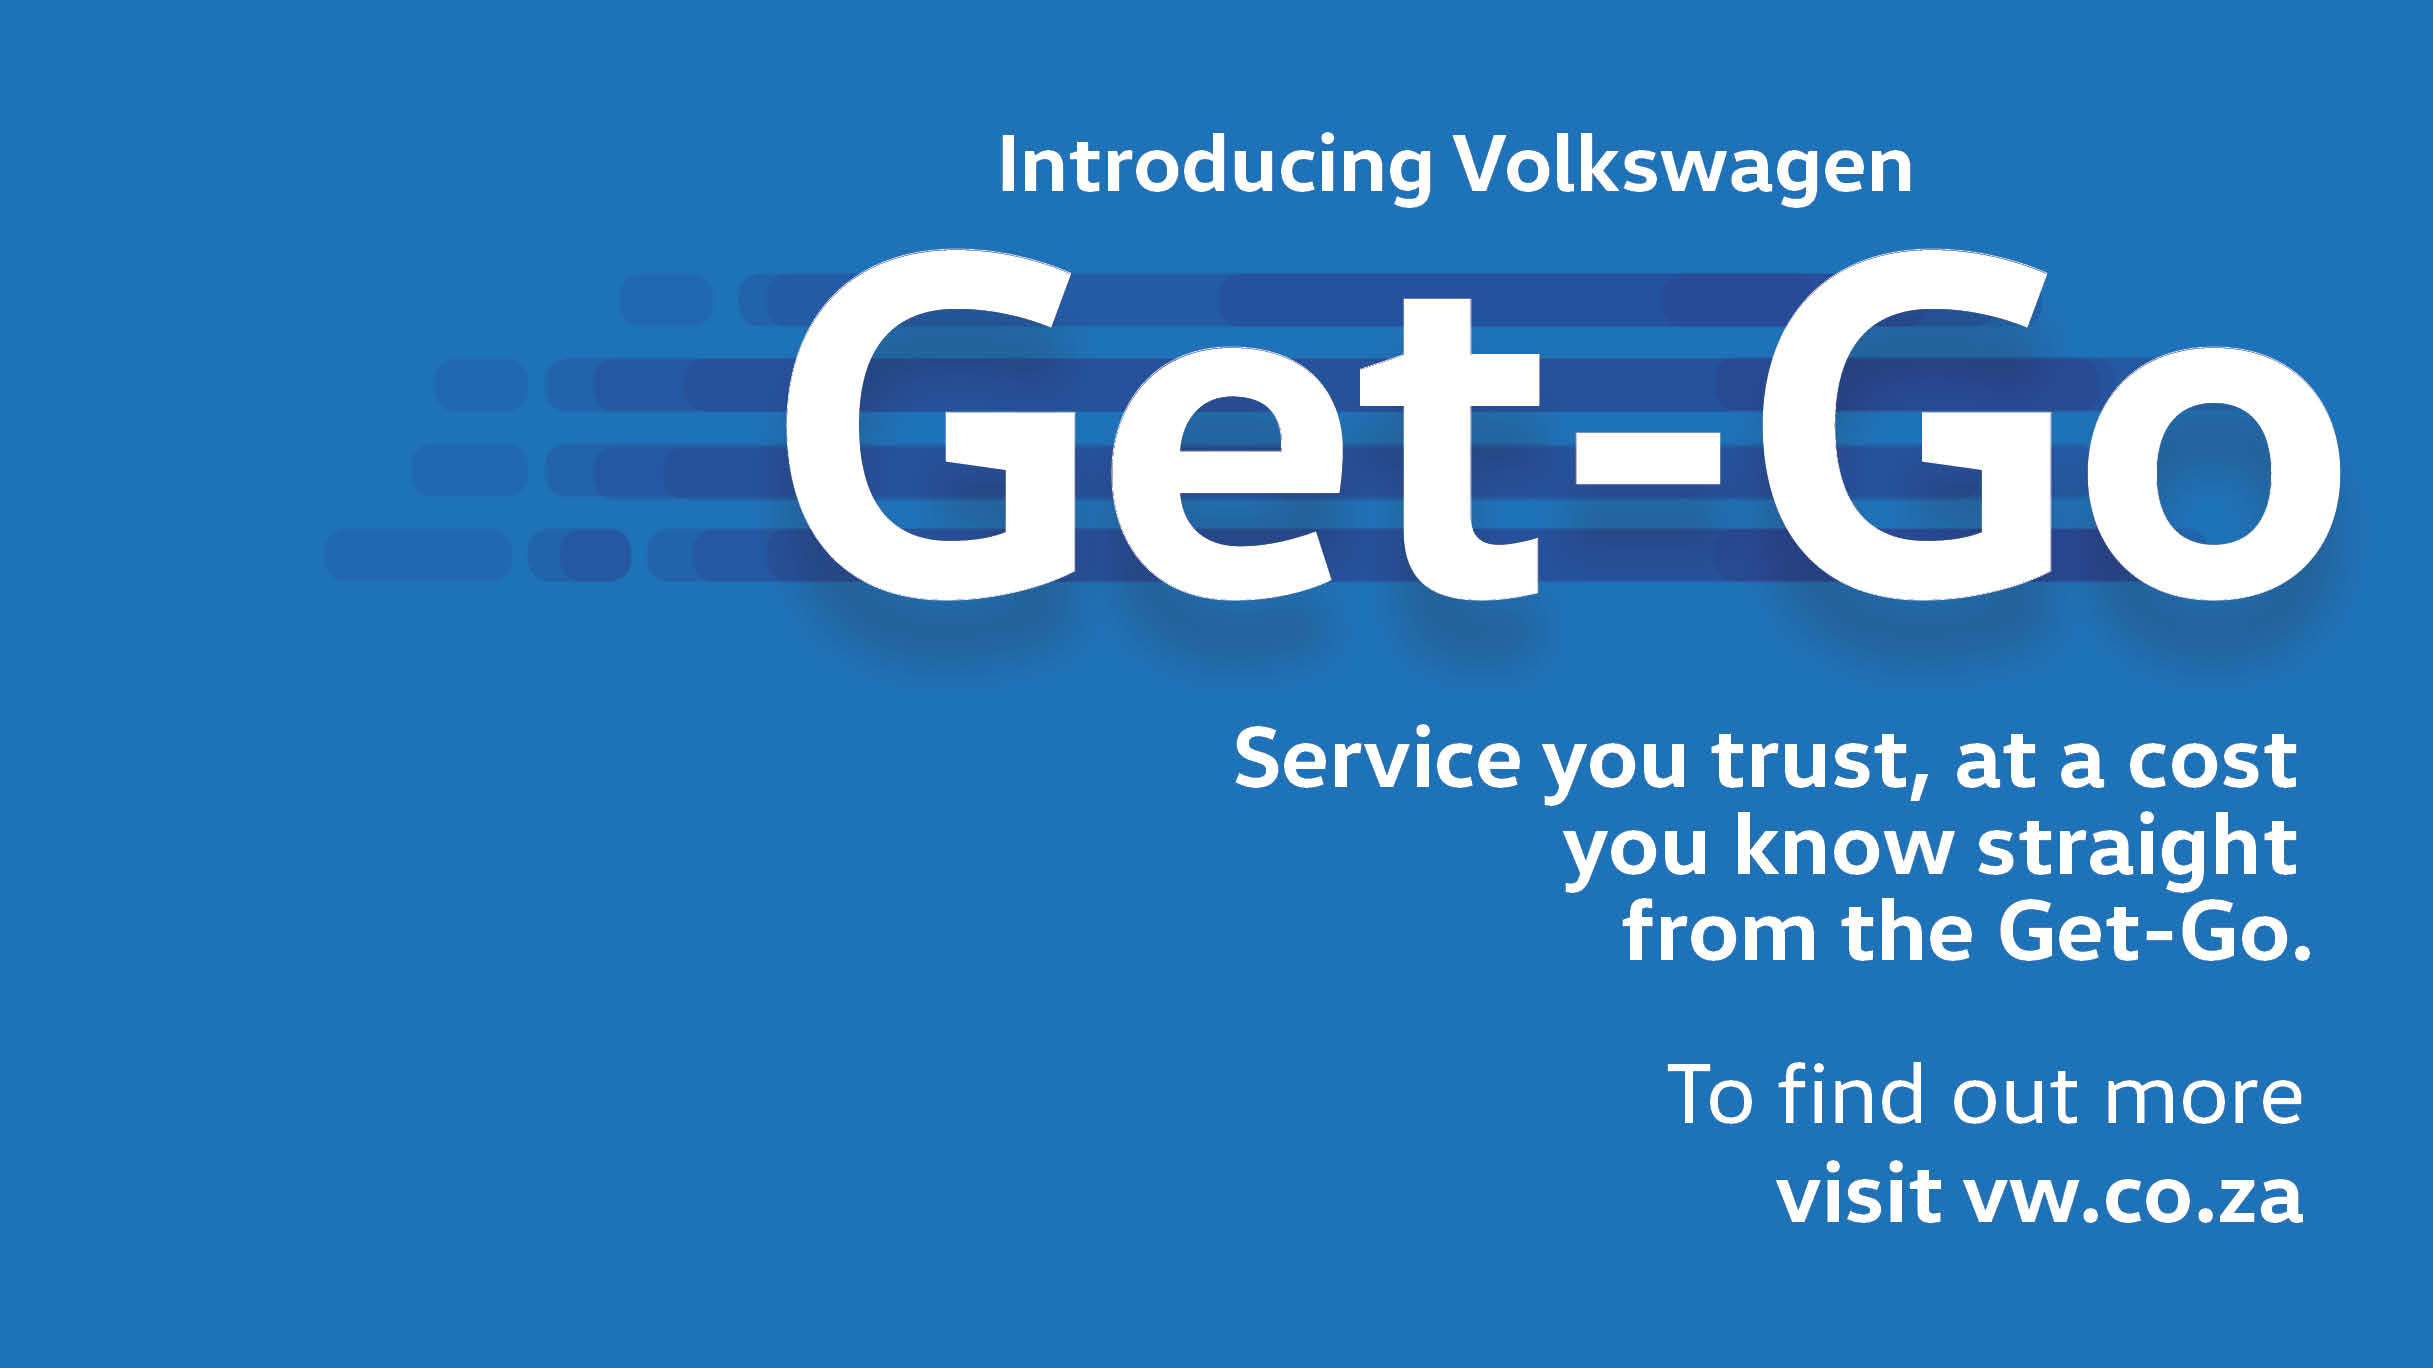 Get-go service offers at Barons VW